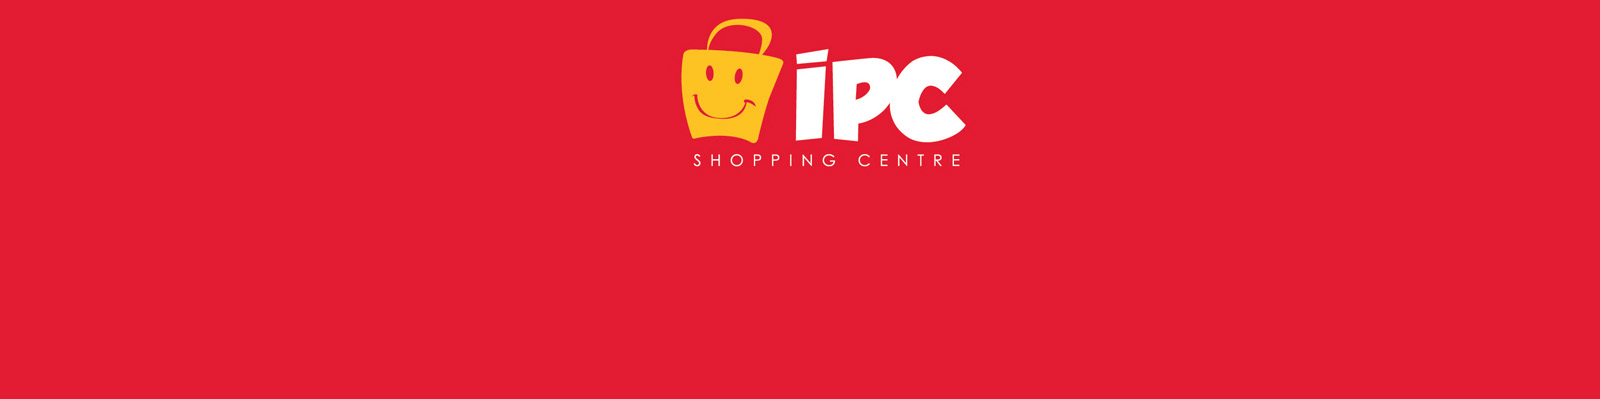 IPC SHOPPING CENTER